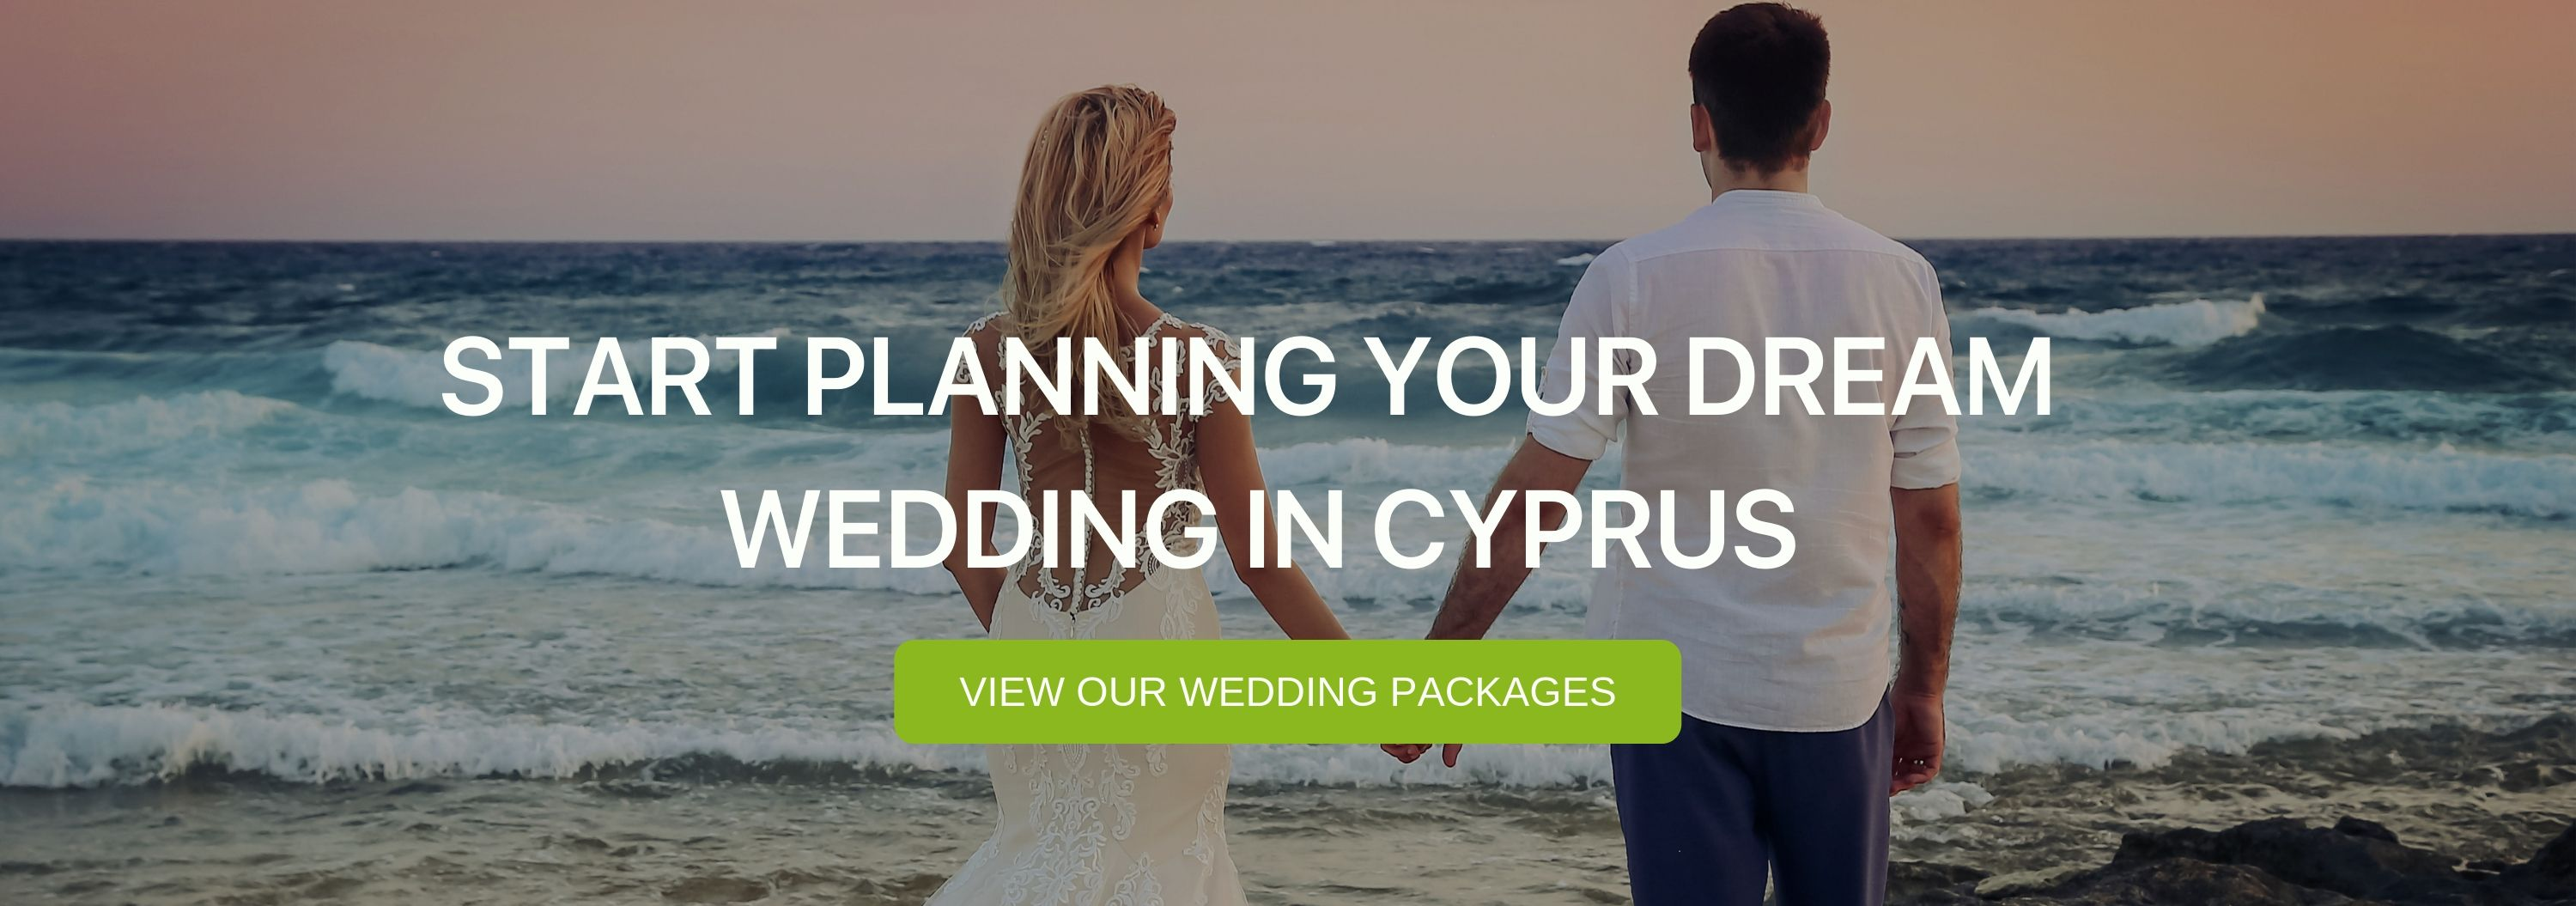 """A banner that says """"Start planning your dream wedding in Cyprus"""""""